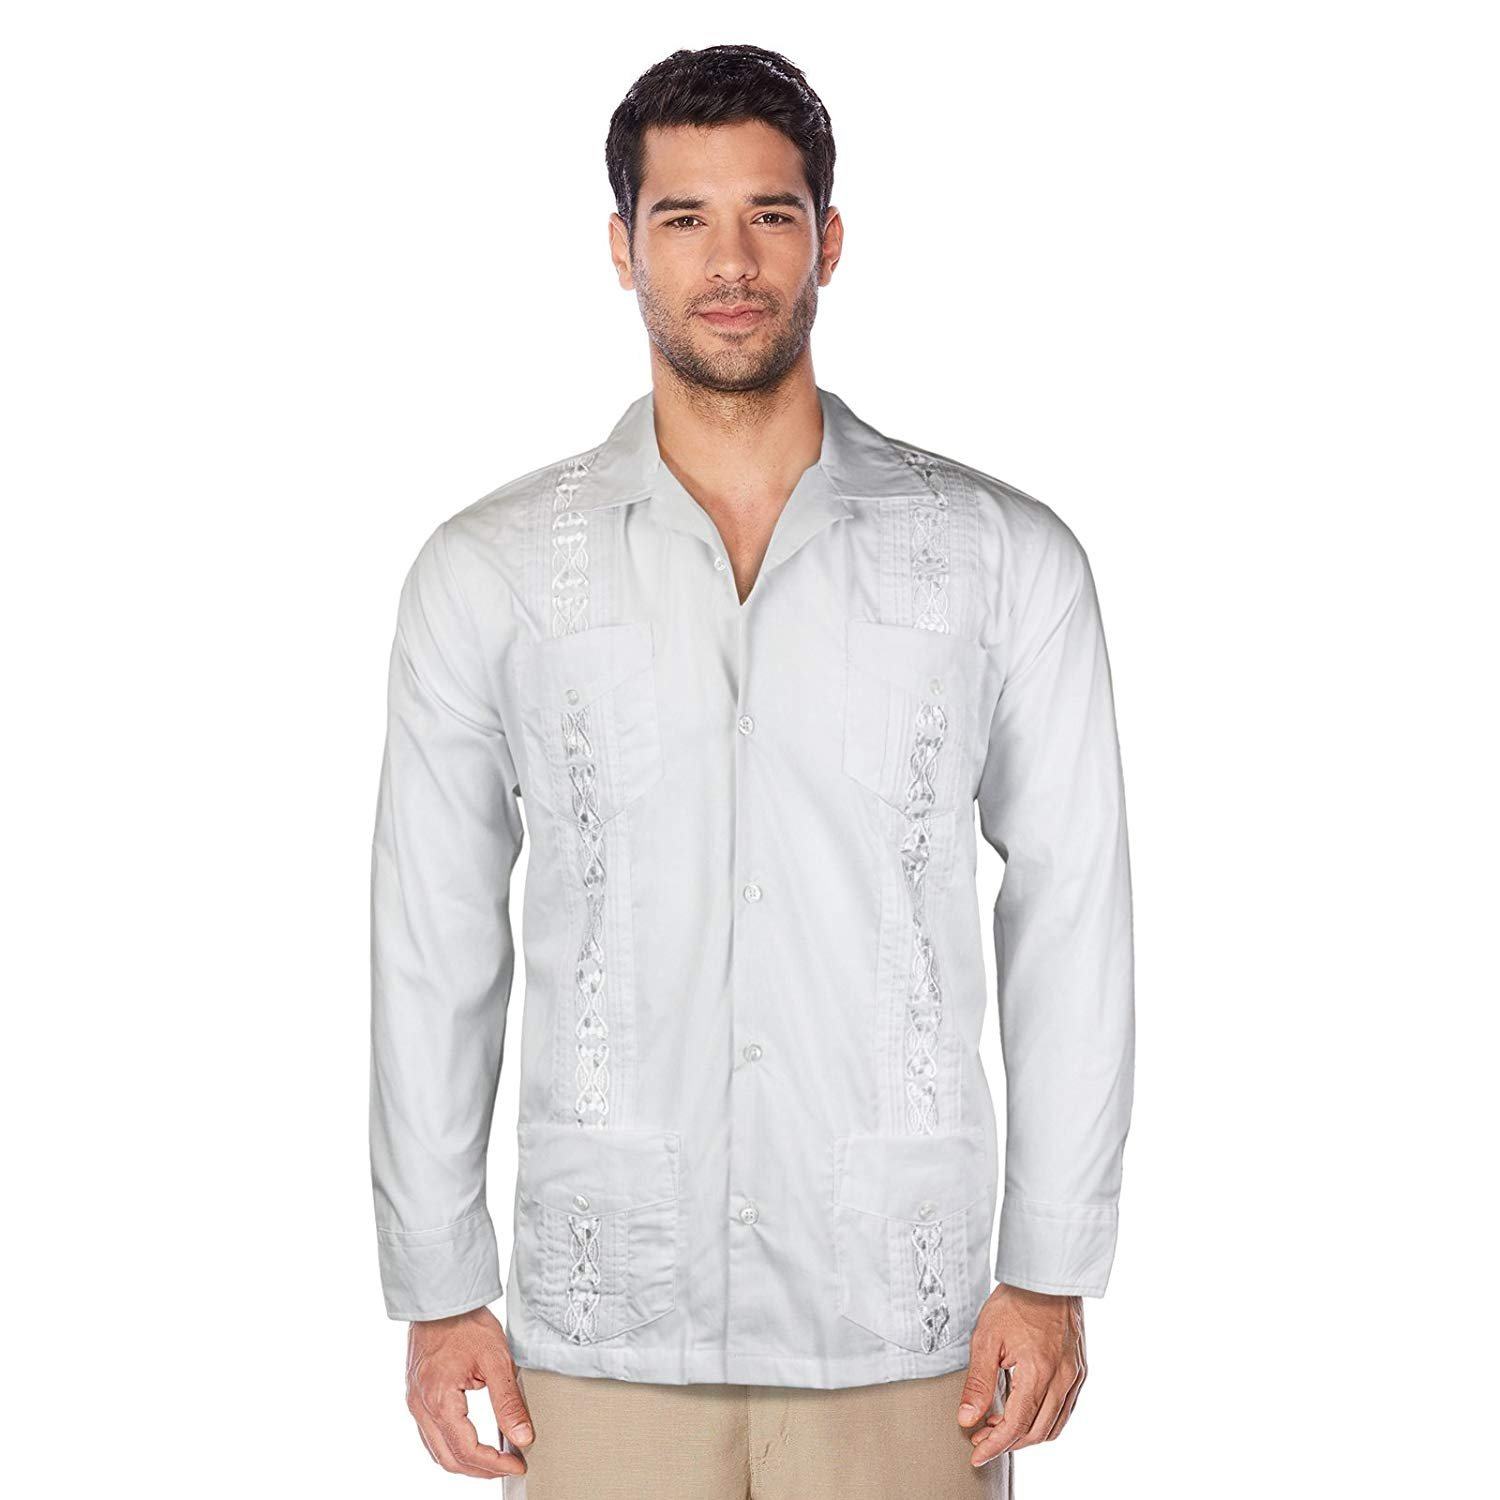 Maximos USA Guayabera Men's Cuban Beach Wedding Long Sleeve Button-up Casual Dress Shirt (White, 5XL)